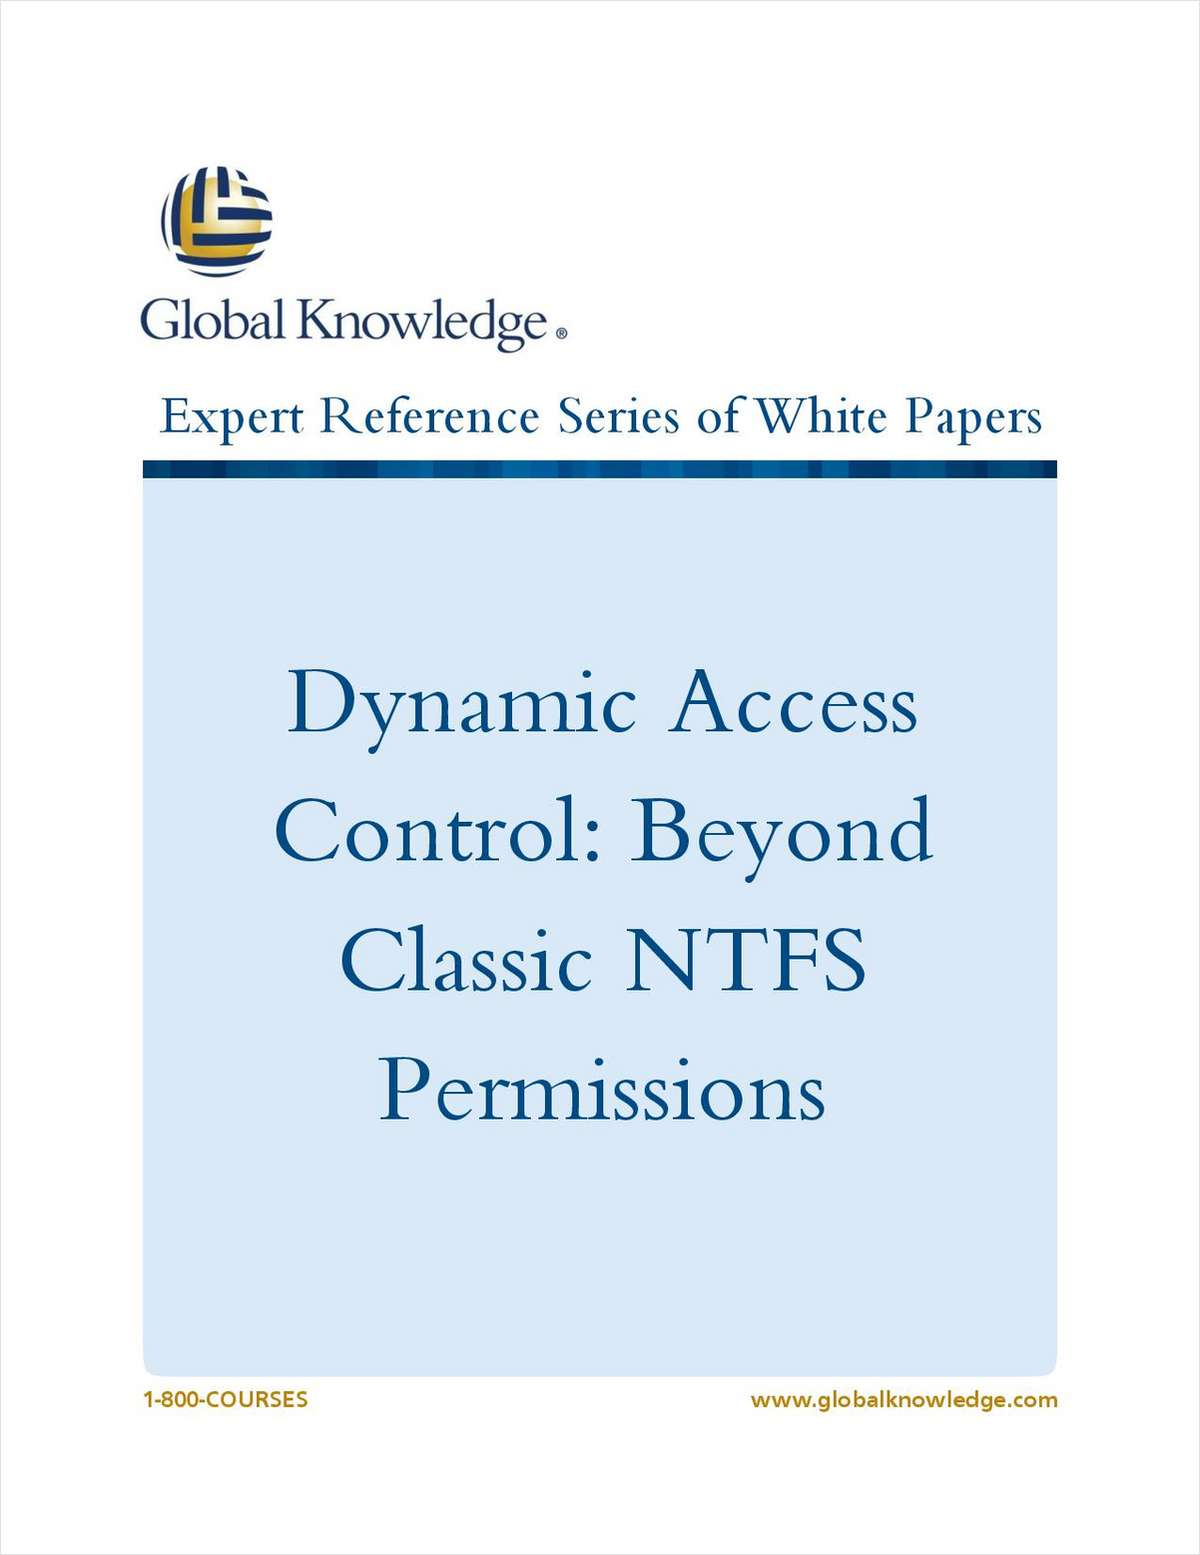 Dynamic Access Control: Beyond Classic NTFS Permissions